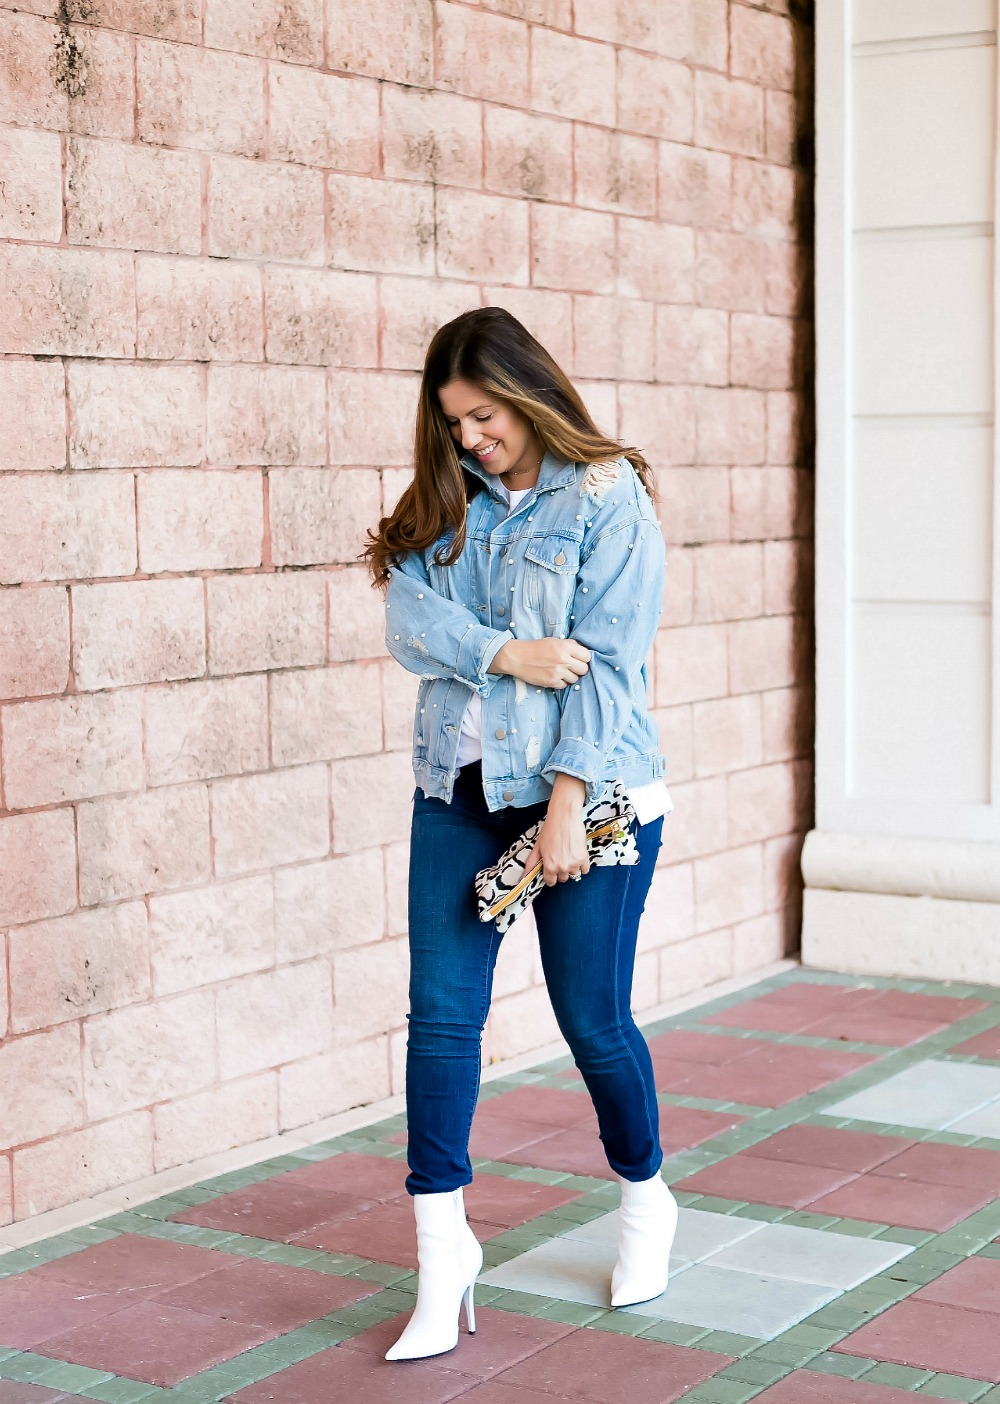 denim on denim outfit_ Florida Fashion Blogger Jaime Cittadino